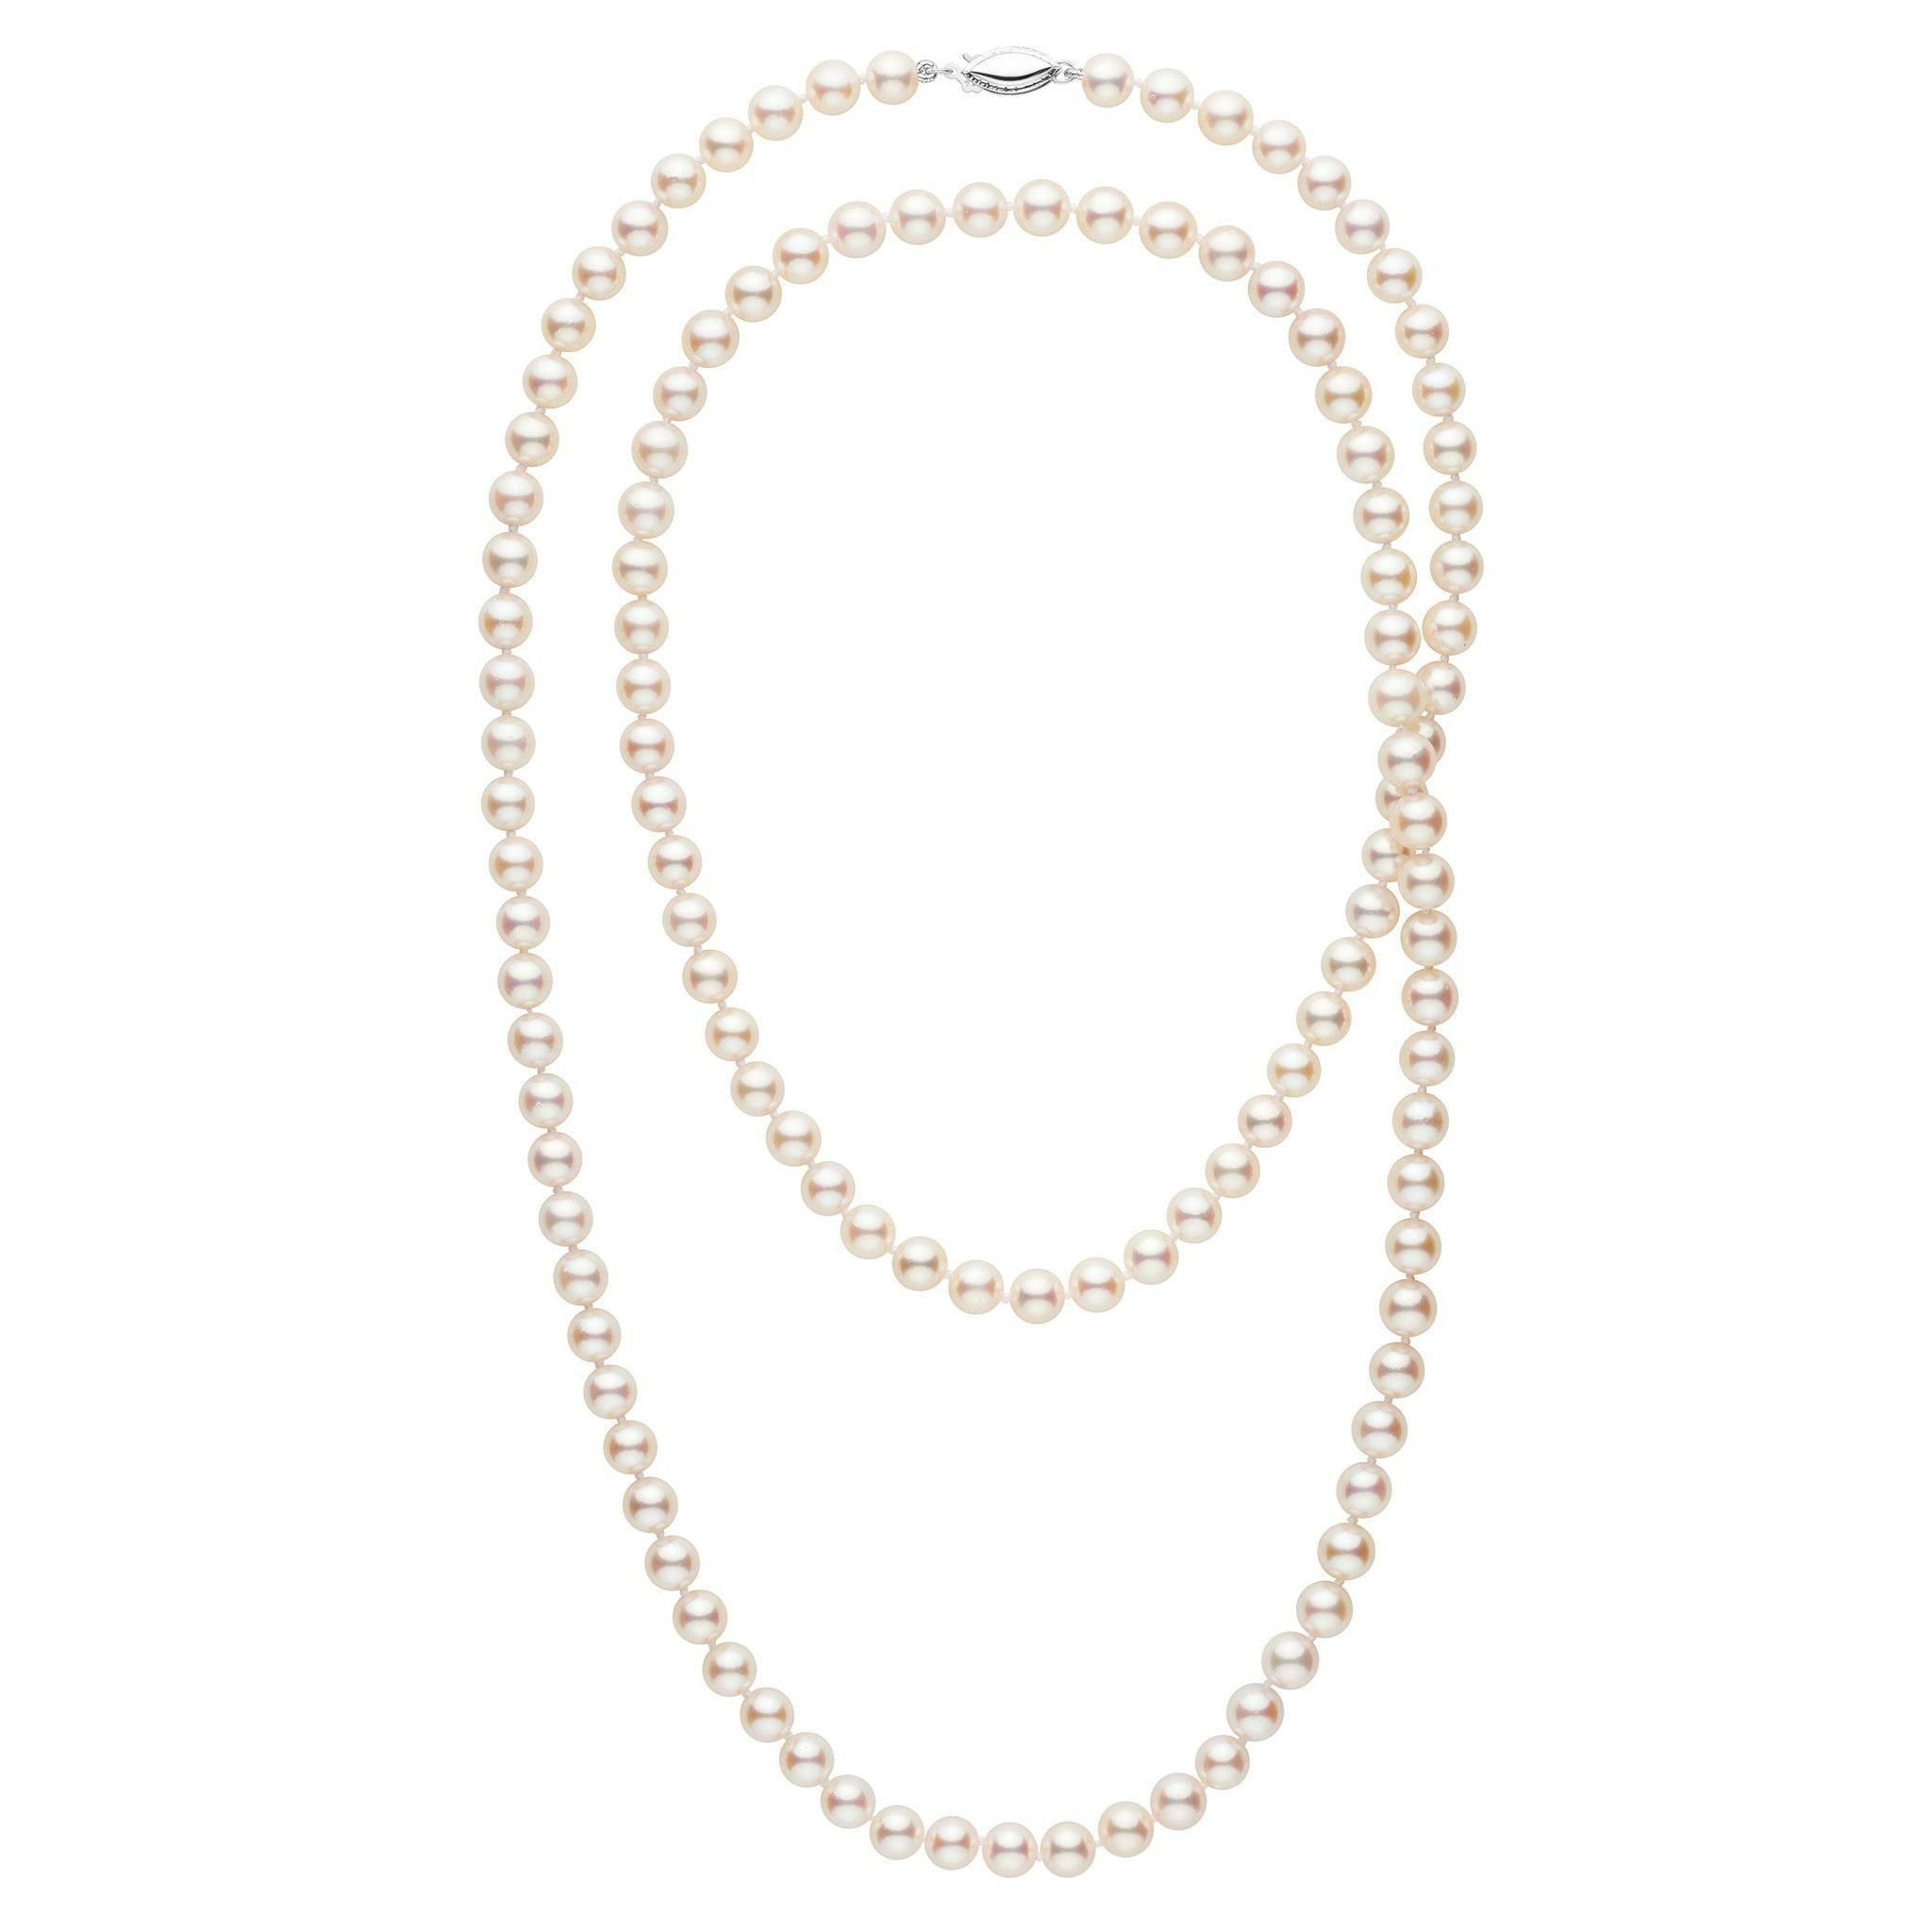 6.5-7.0 mm 35 Inch AAA White Akoya Pearl Necklace